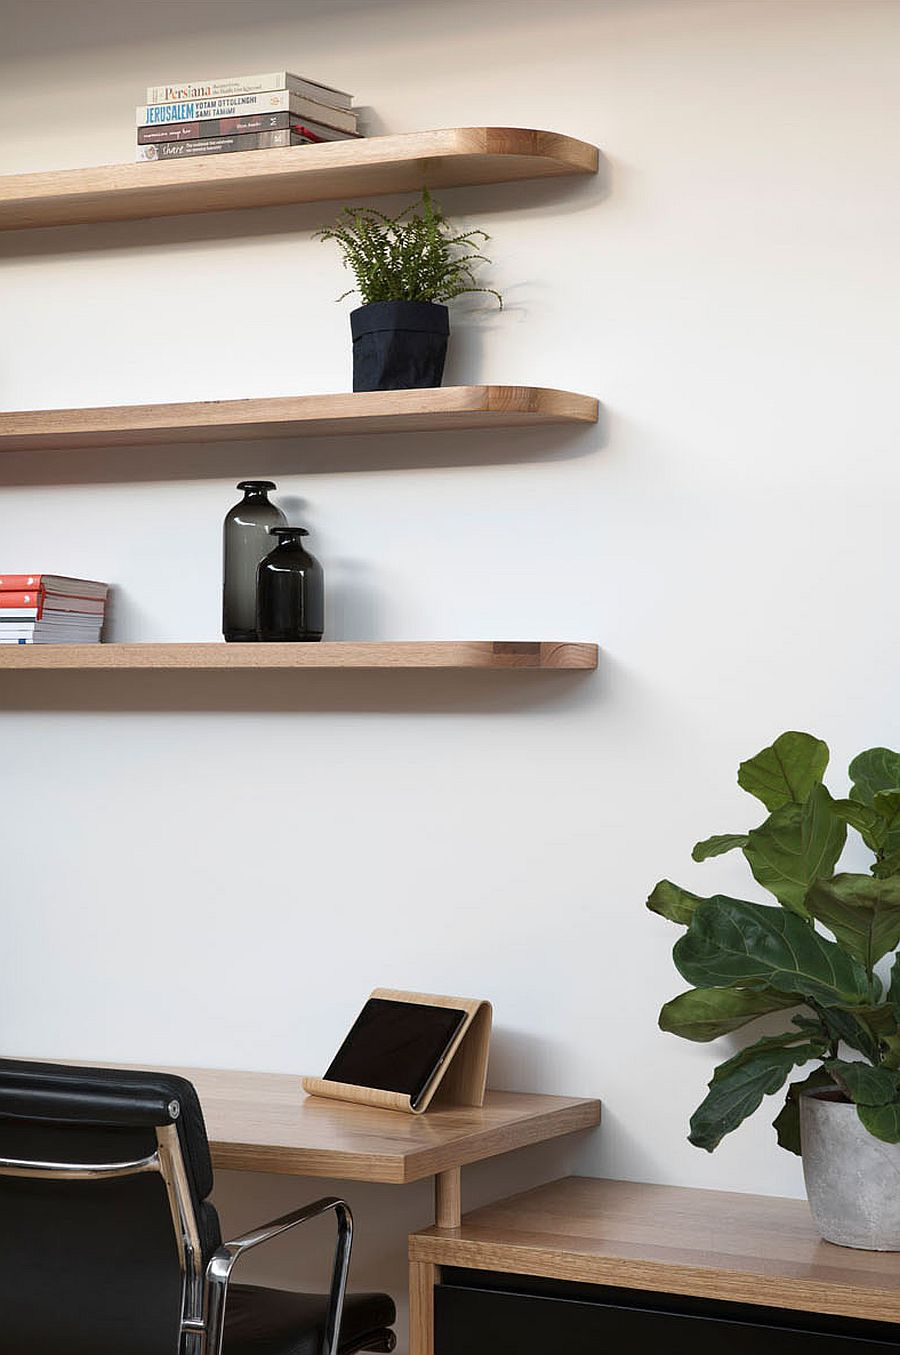 Simple floating shelves act as both decorative and practical additions